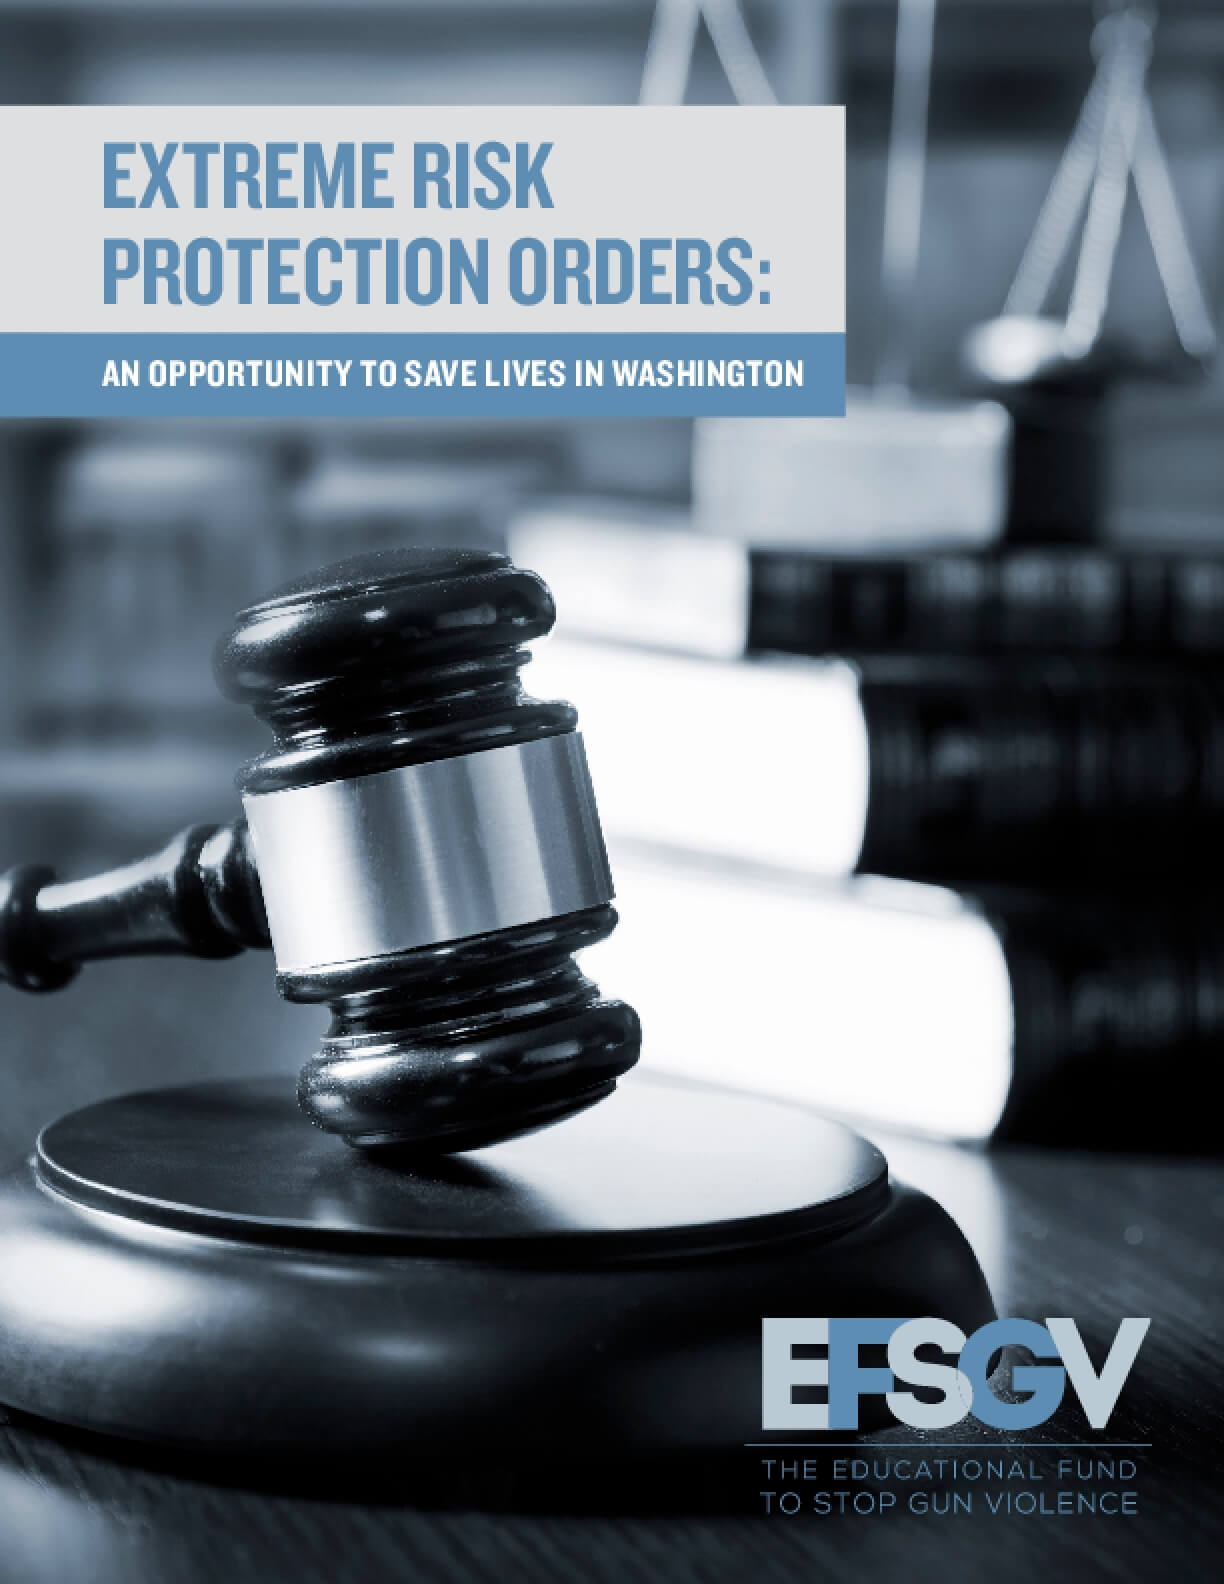 Extreme Risk Protection Orders: An Opportunity to Save Lives in Washington